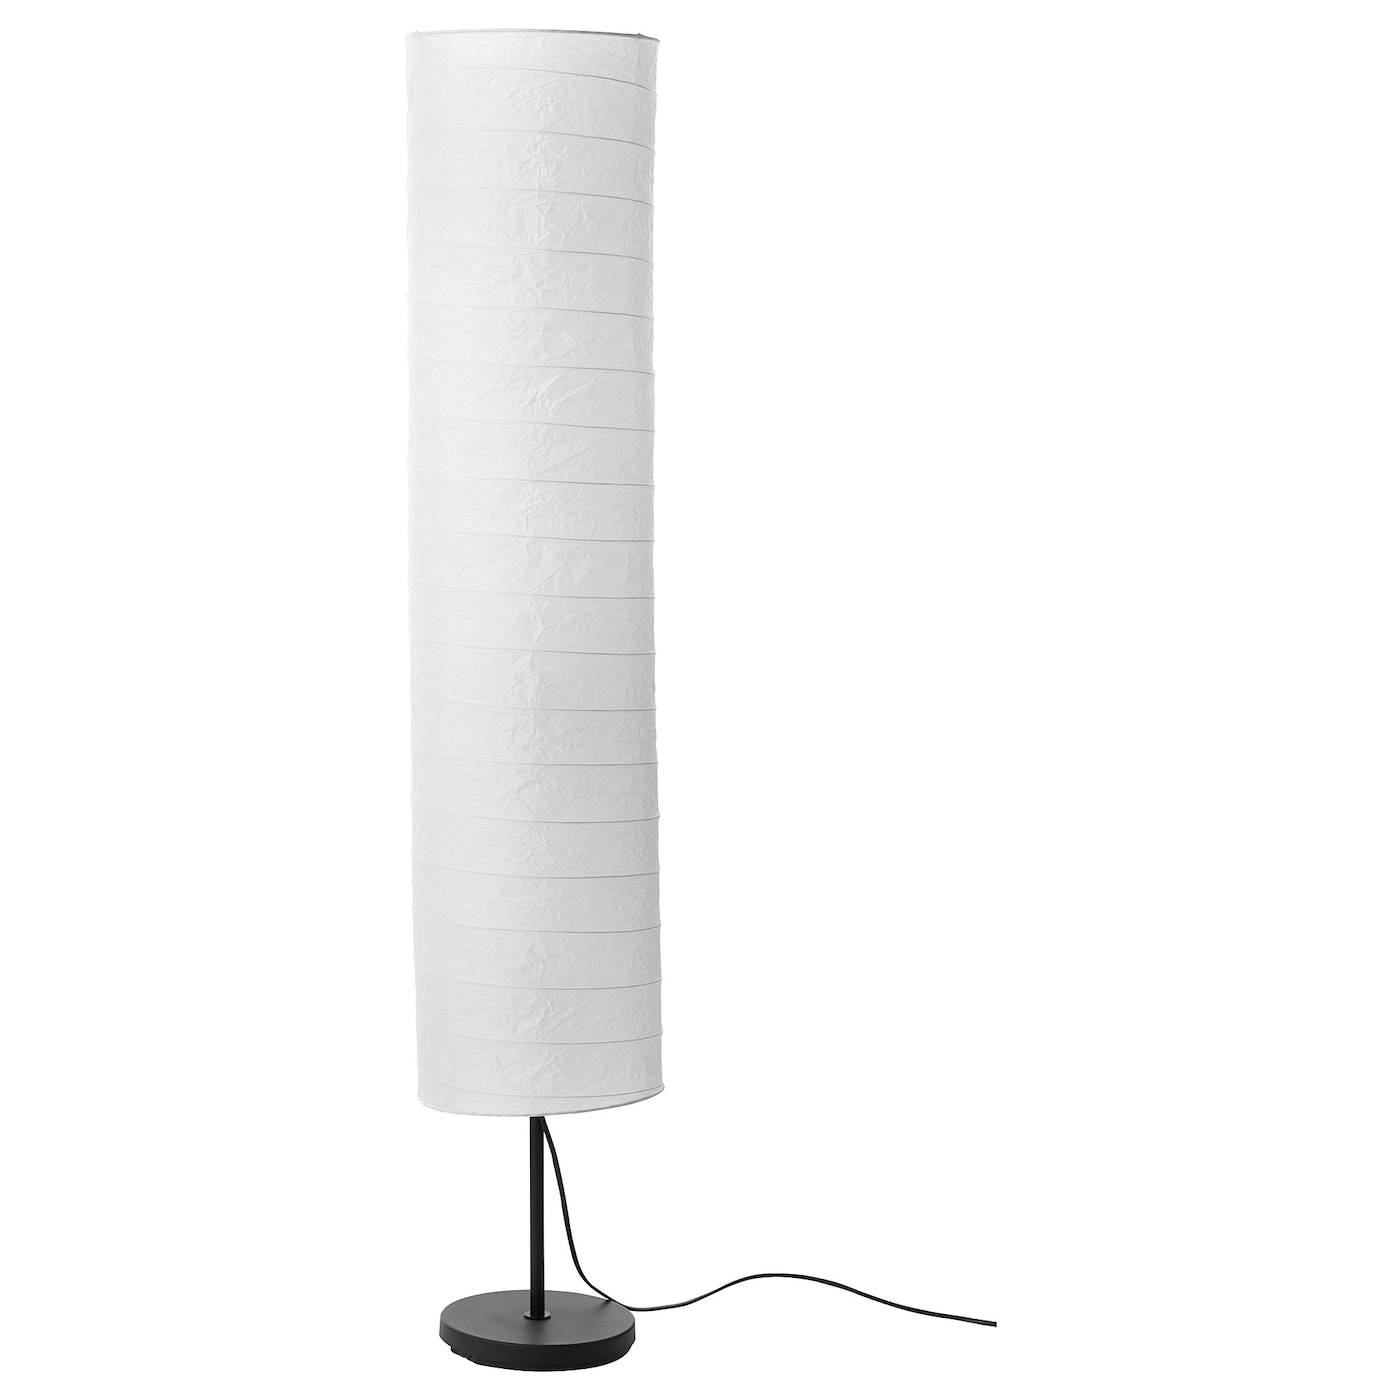 Floor lamps standard lamps ikea ikea holm floor lamp gives a soft mood light aloadofball Gallery